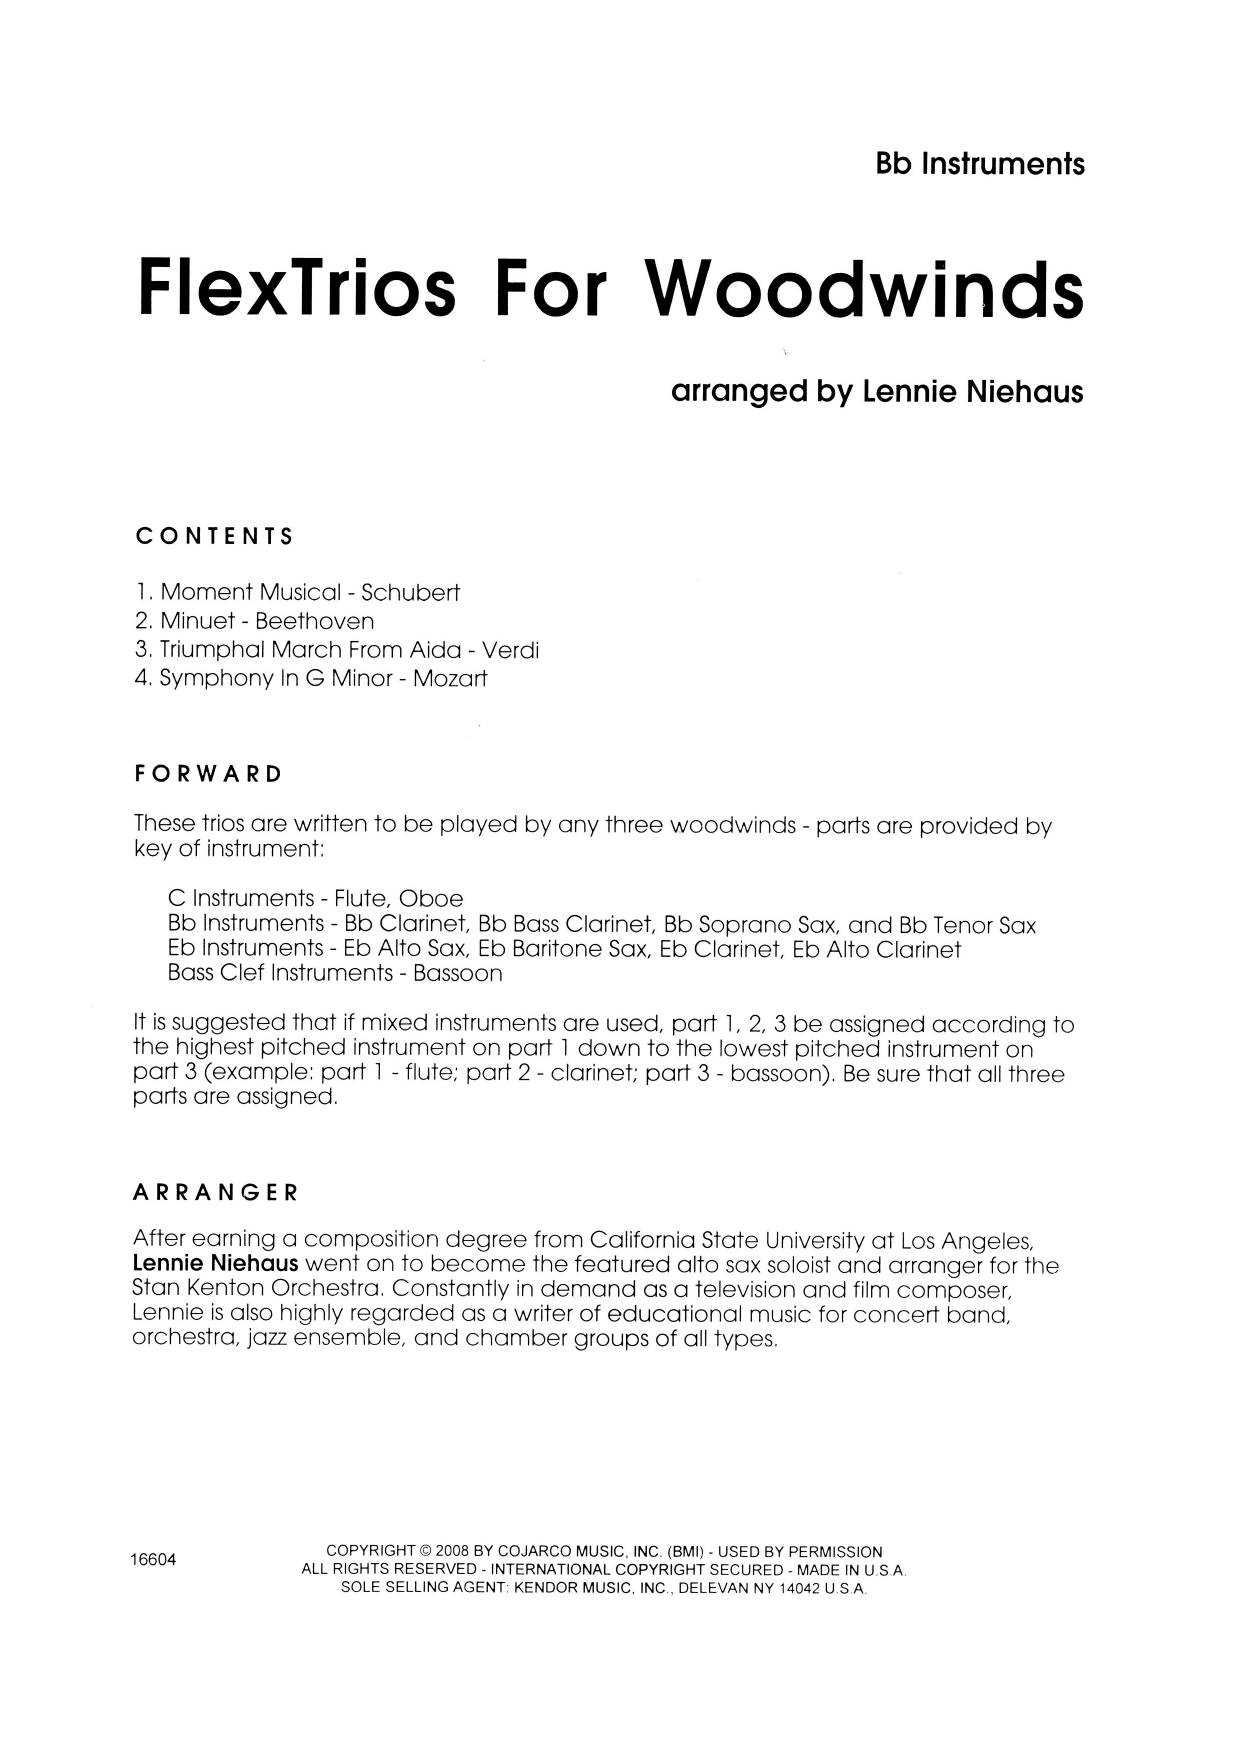 FlexTrios For Woodwinds (playable by any three woodwind instruments) - Bb Instruments Partition Digitale